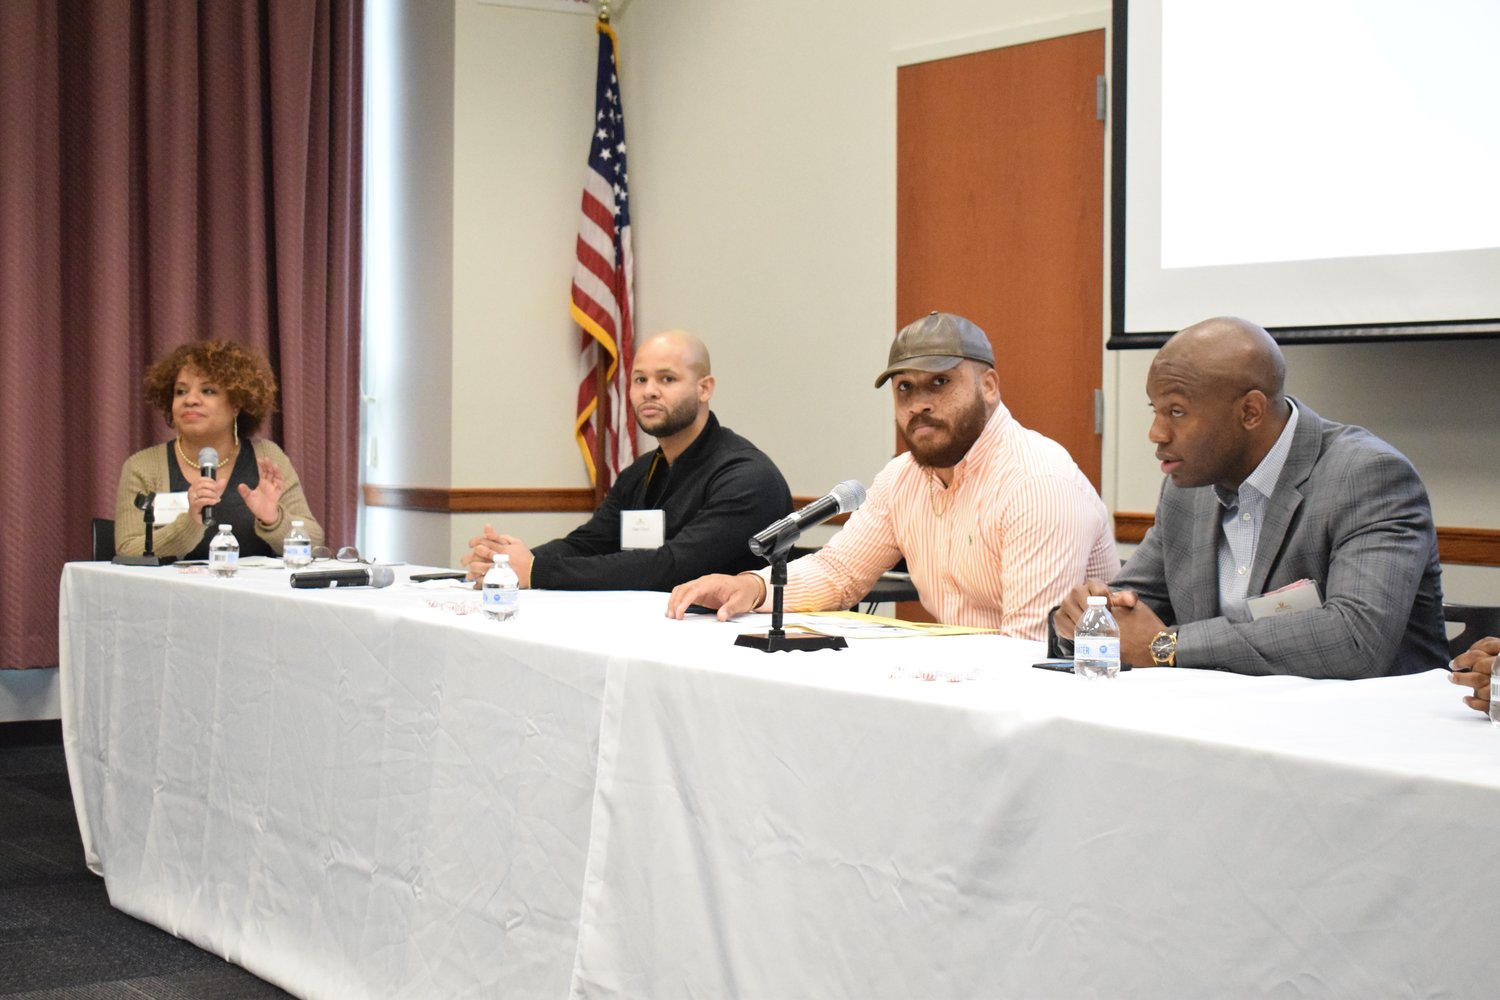 Mimi Pierre-Johnson, left, led a pannel of millennials who gave their perspectives on youth engagement. From the left were Dan Lloyd, Pastor Justin Greaves and Leonard lans.